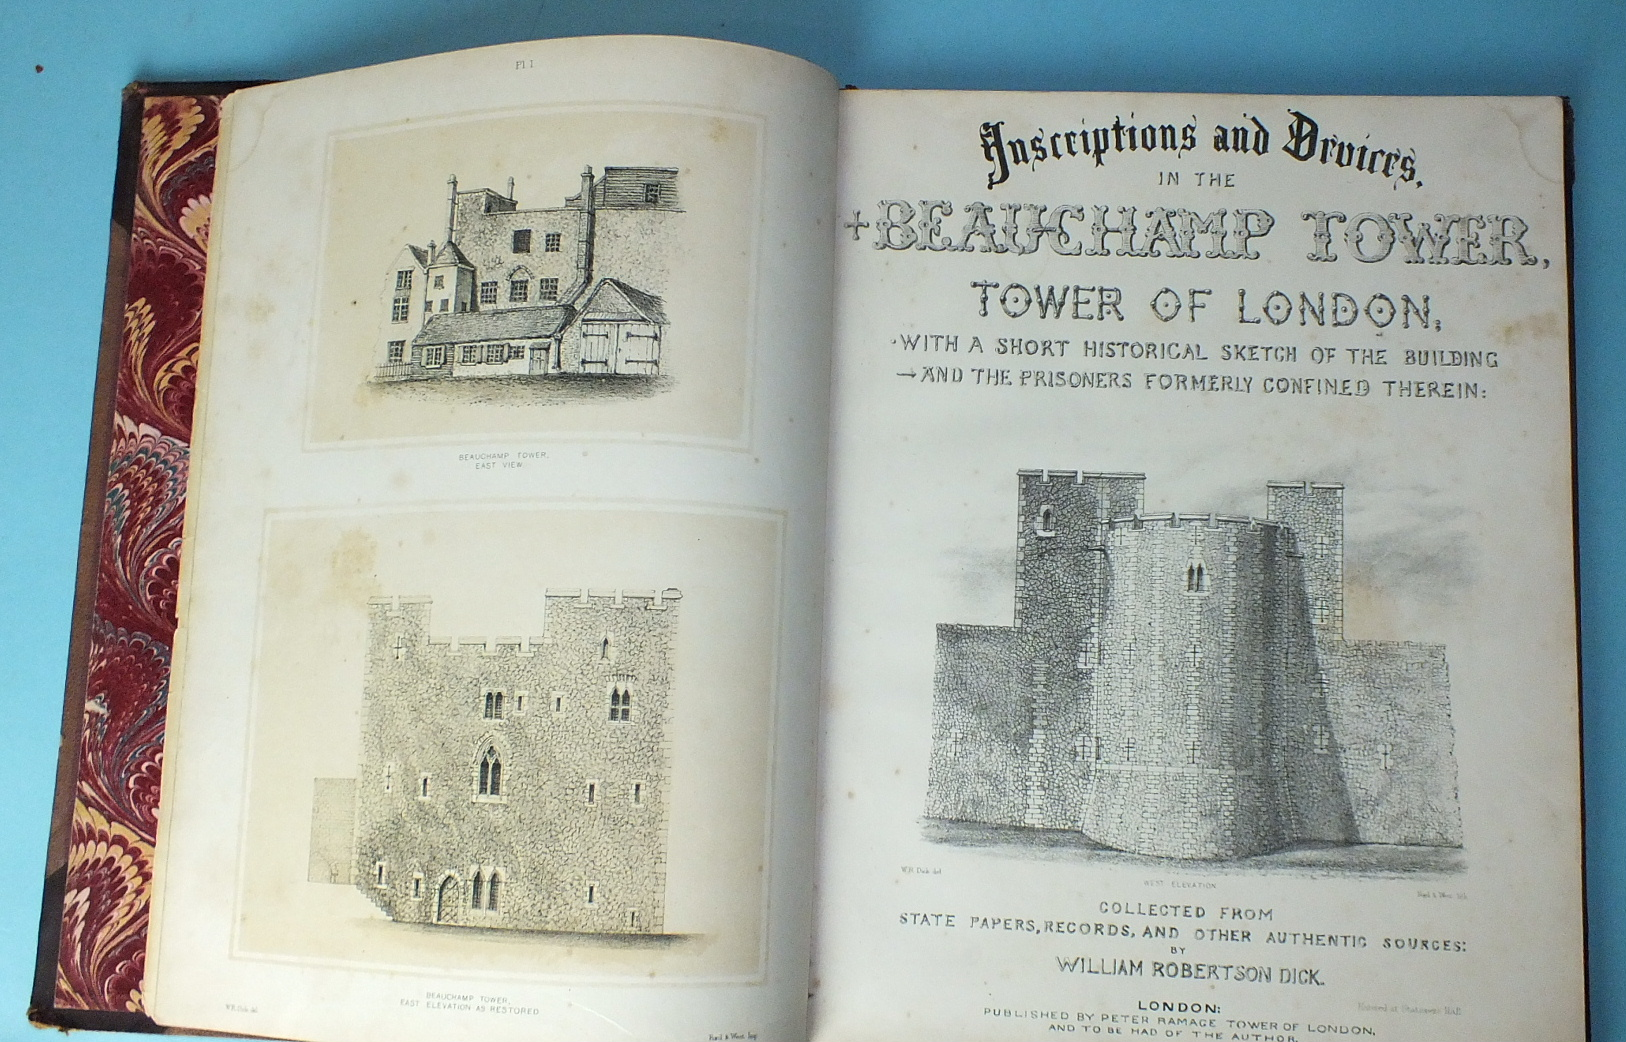 Lot 163 - Dick (William Robertson) Inscriptions and Devices in the Beauchamp Tower, litho frontis, tp and